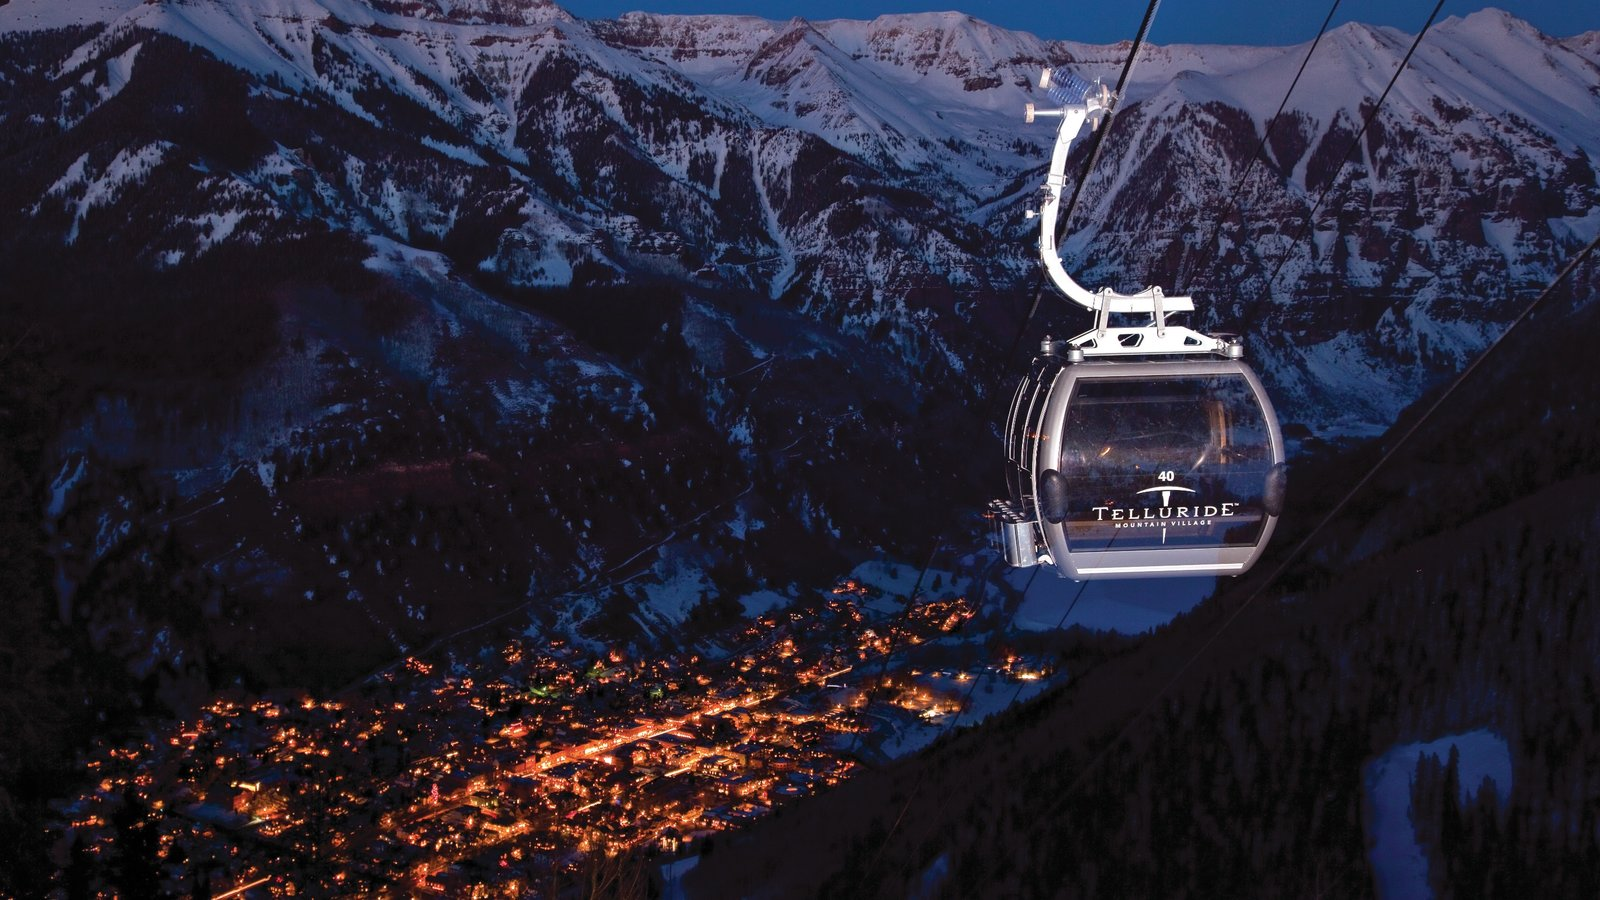 Telluride Ski Resort Featuring A Small Town Or Village Night Scenes And Snow